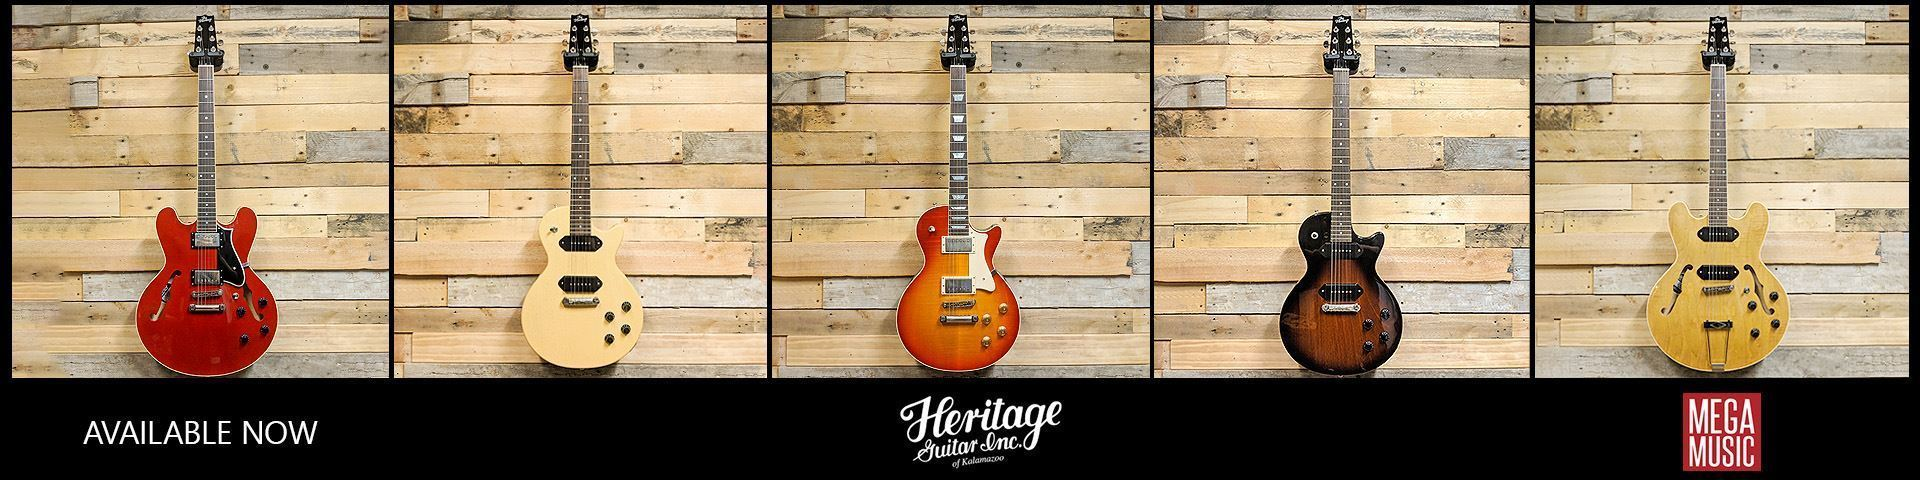 Heritage Series Guitars available now